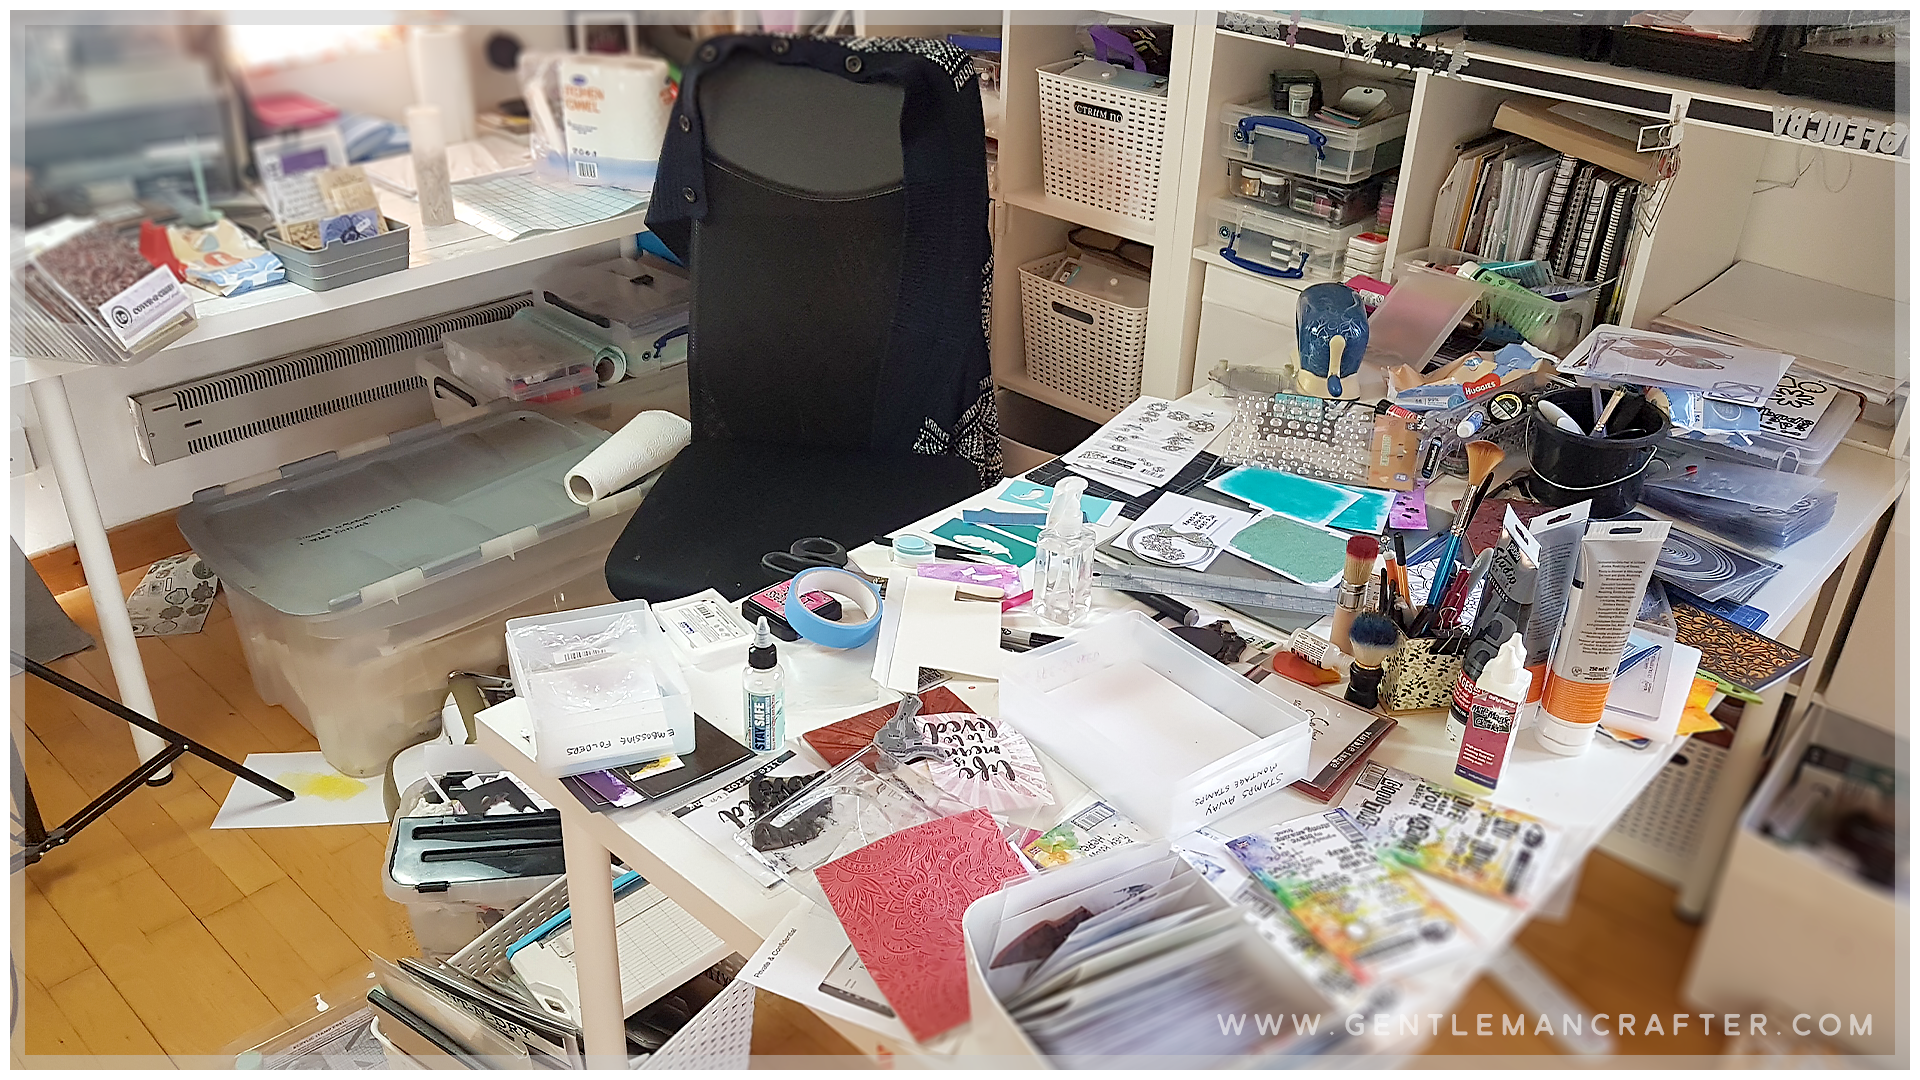 An image of a messy craft room.